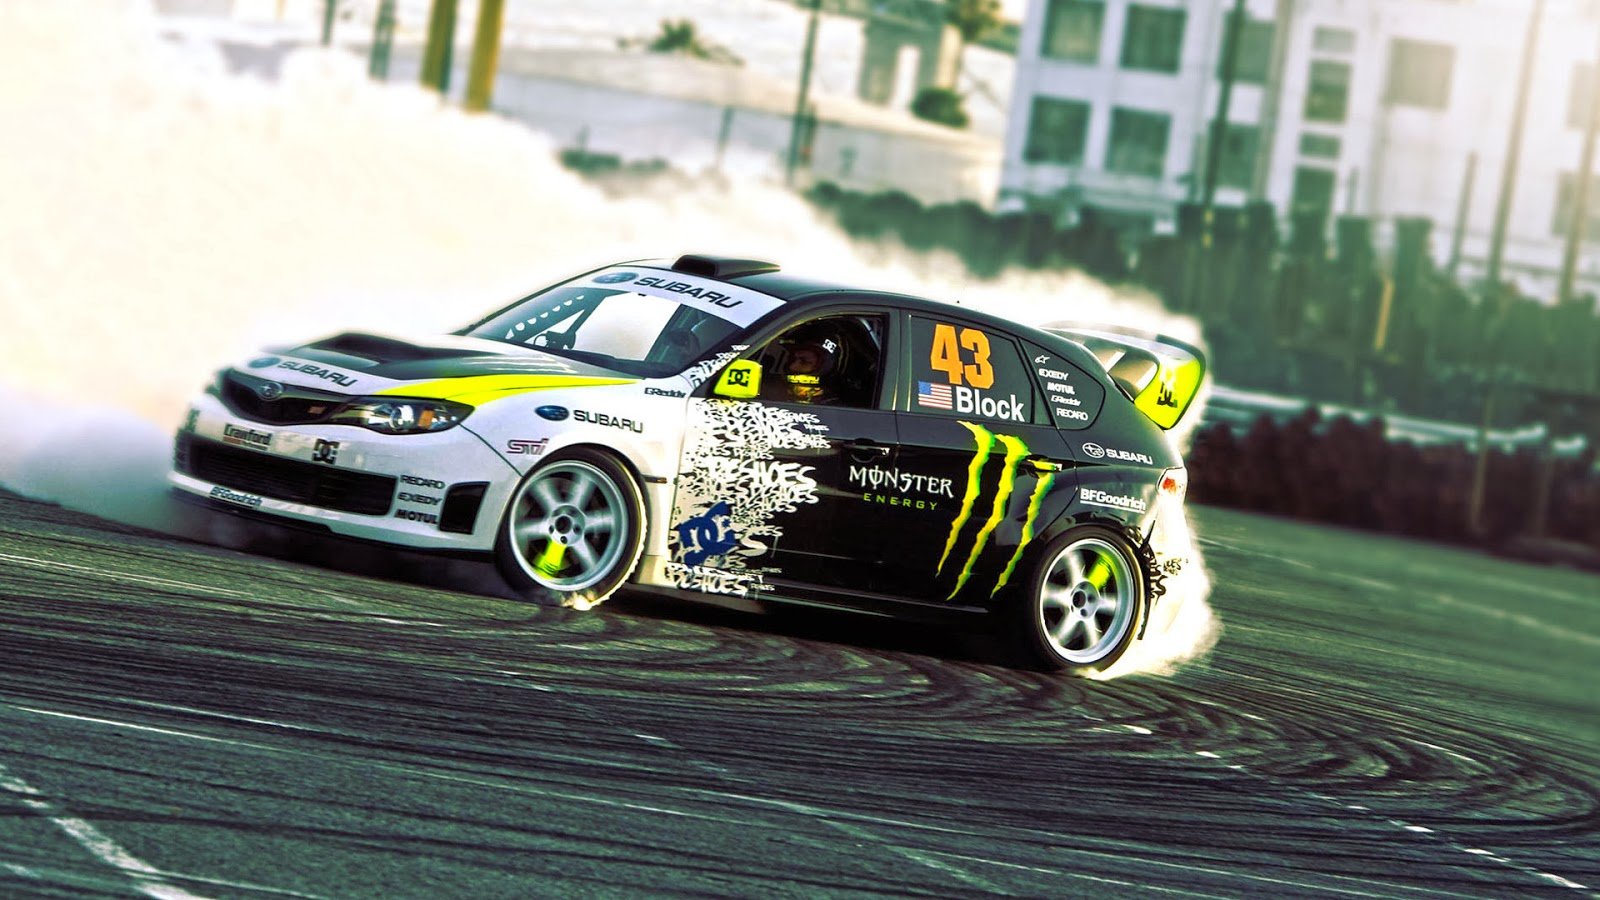 2014 subaru impreza wrx ken block review mycarzilla. Black Bedroom Furniture Sets. Home Design Ideas